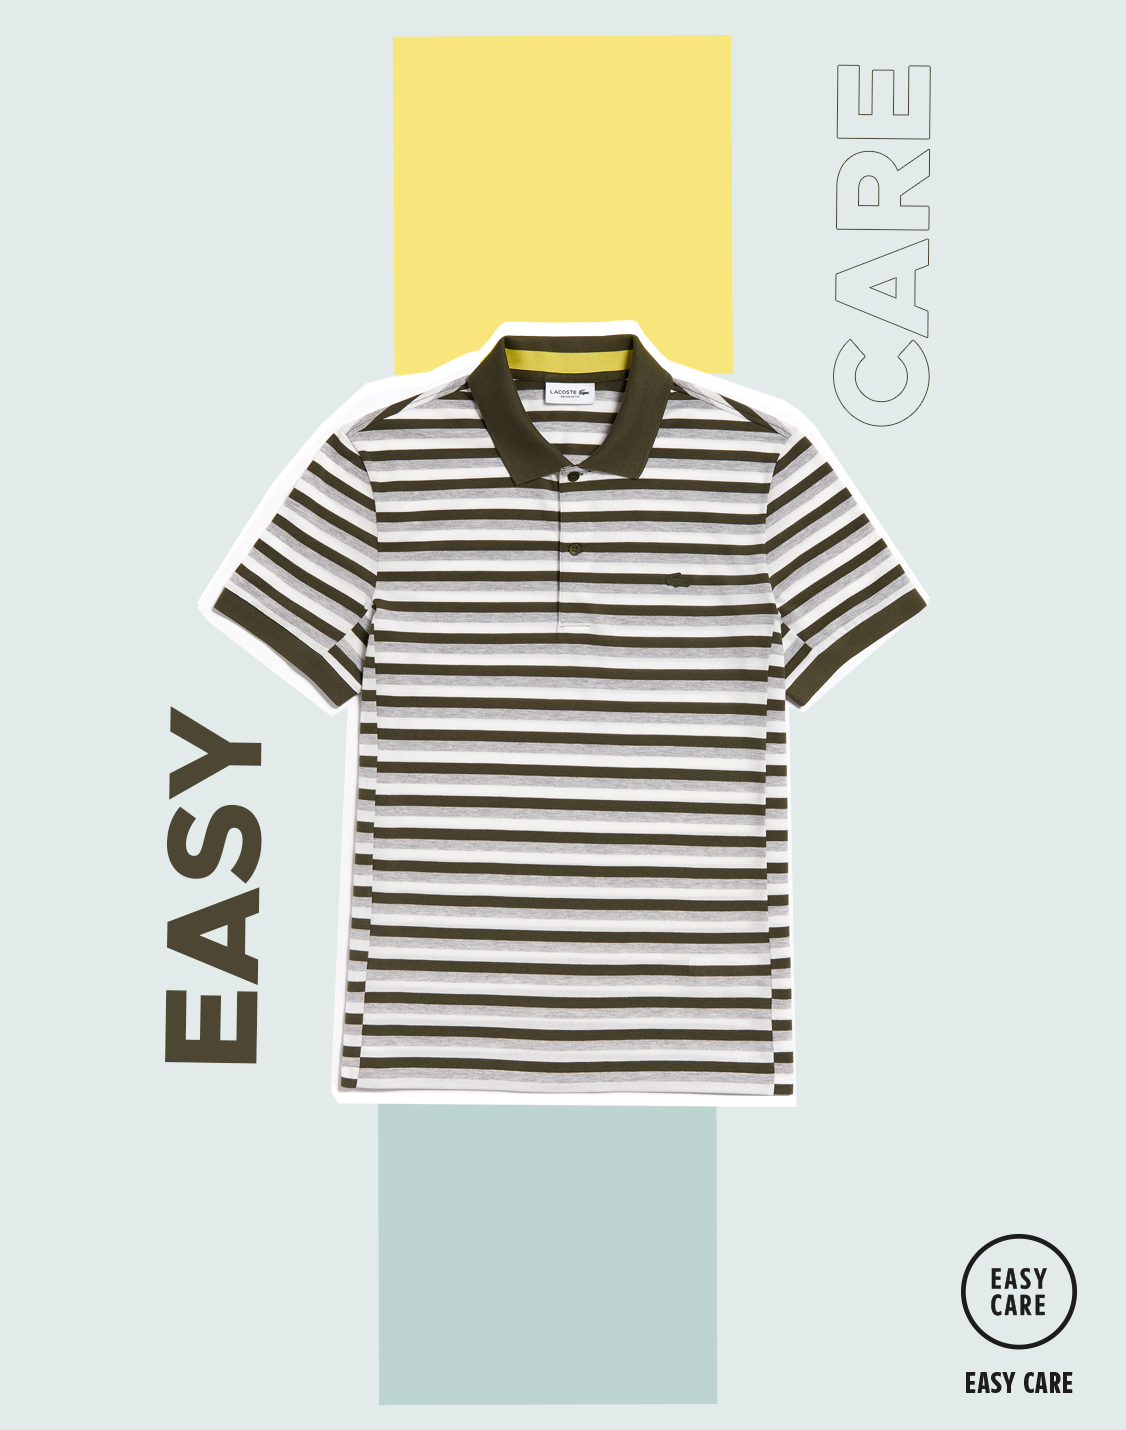 Easy Care: Crease-free material